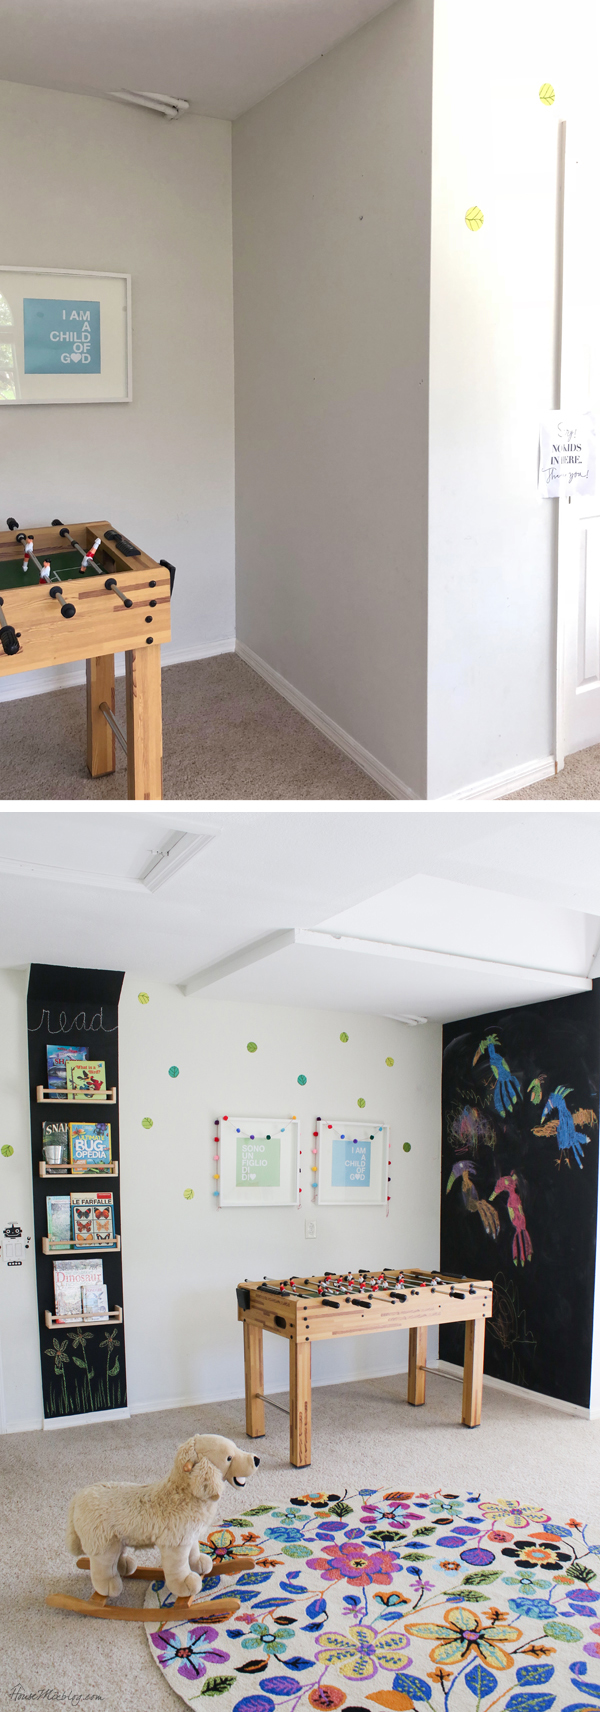 Chalkboard wall for 9 dollars in playroom